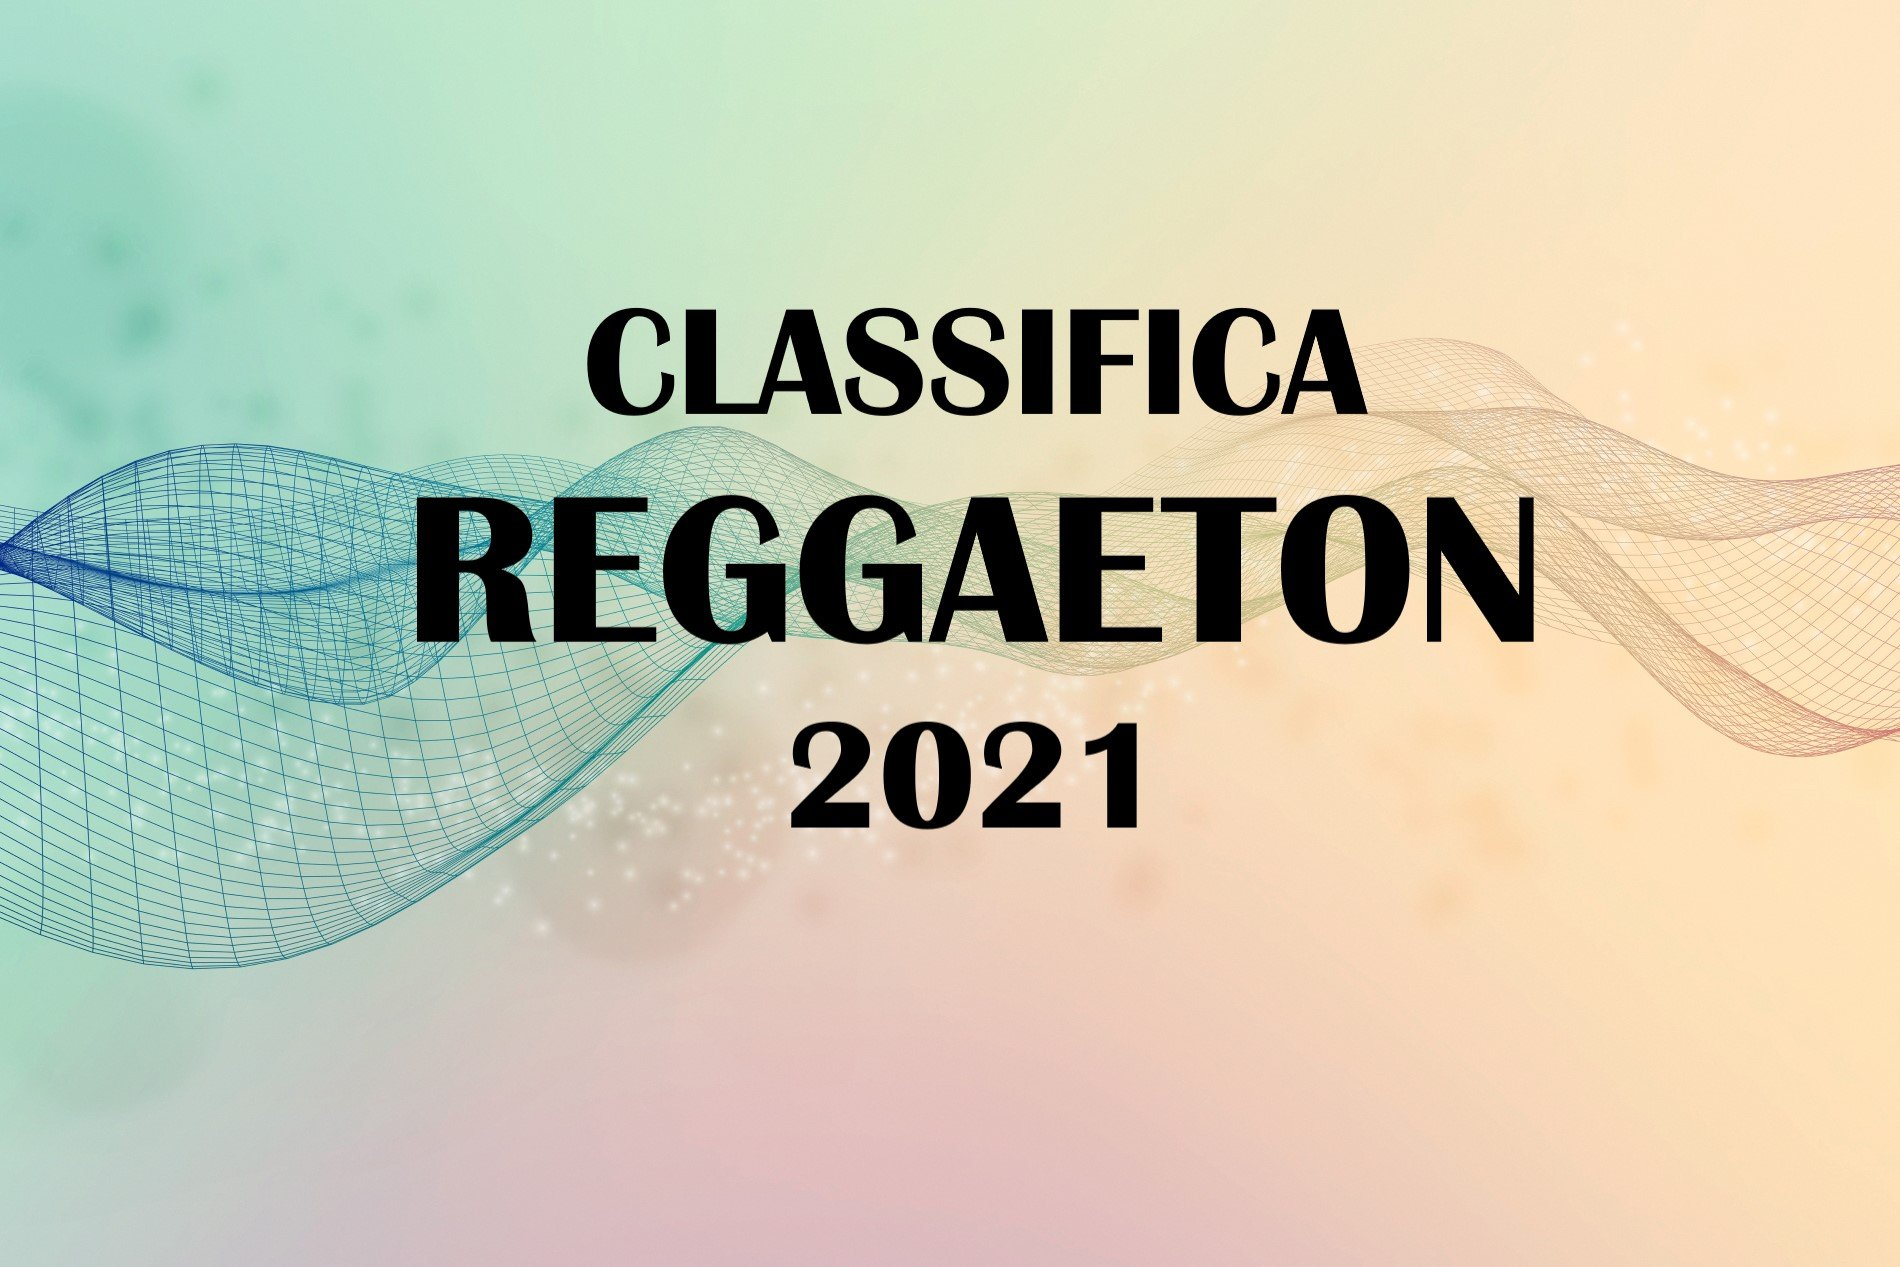 CLASSIFICA REGGAETON 2021